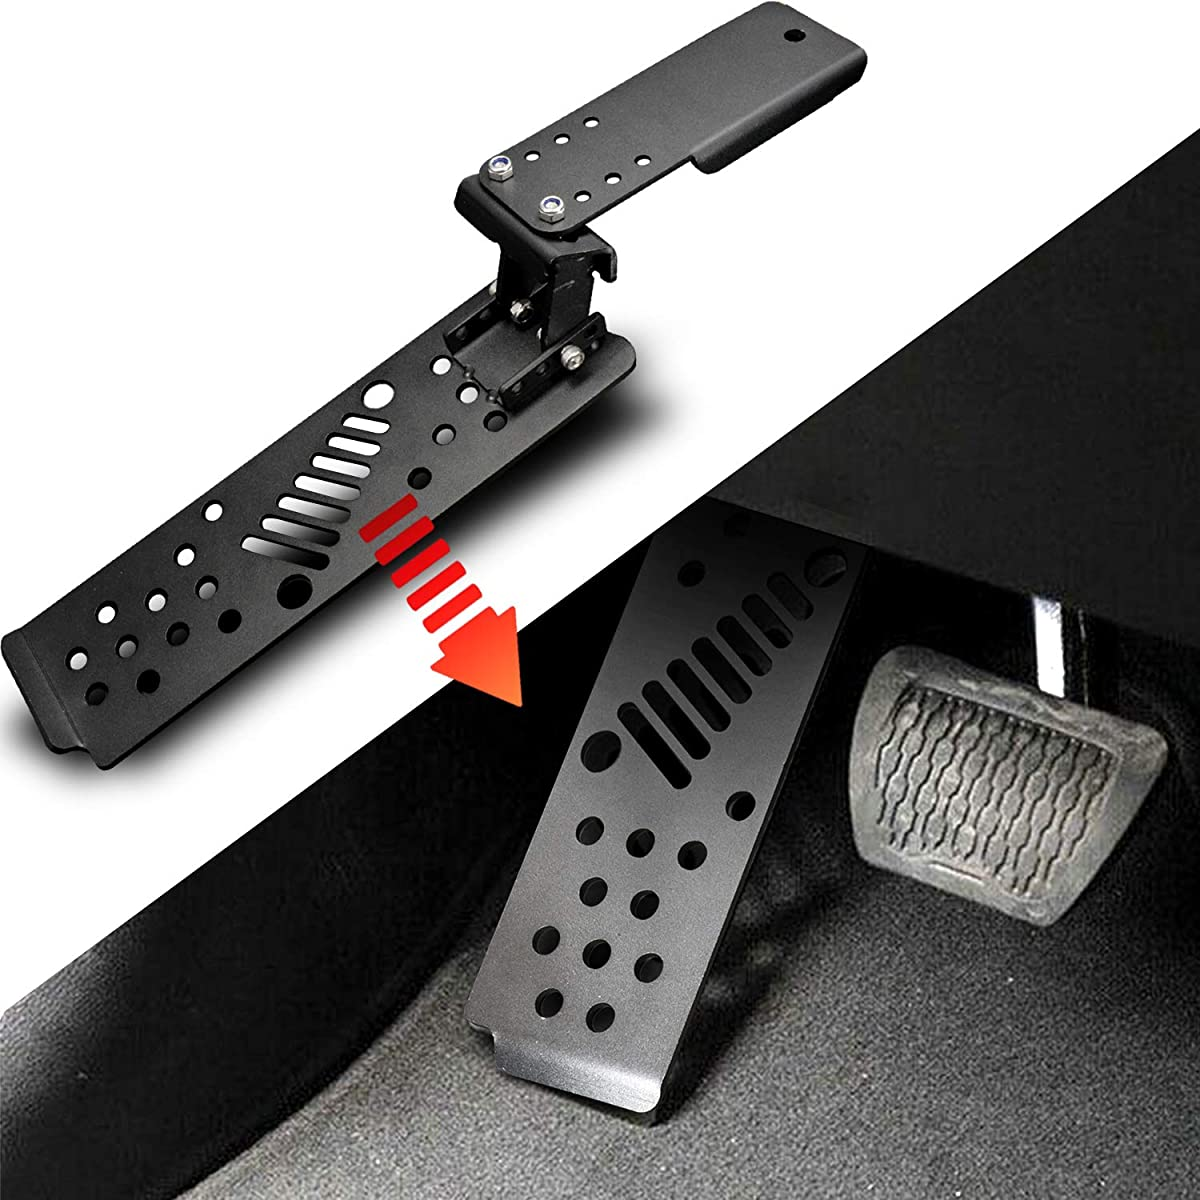 Seven Sparta Left Foot Rest Pedal Aluminium Alloy Foot Pegs Kick Panel for 2018 Jeep Wrangler JL& Unlimited